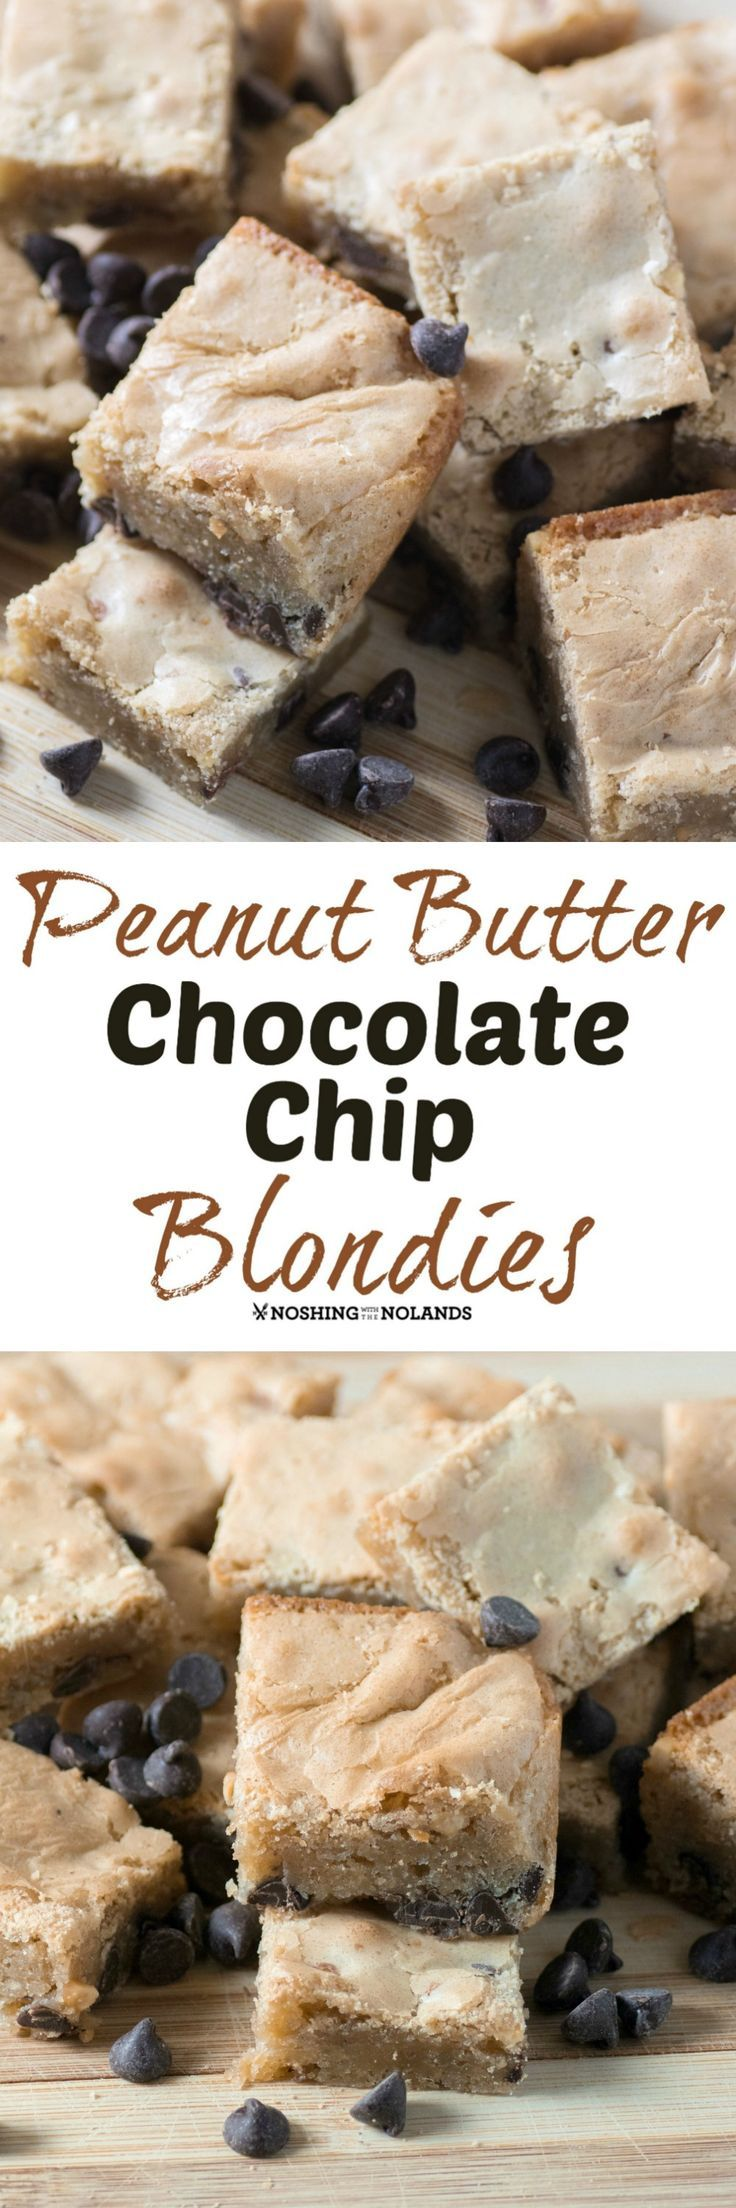 Peanut Butter Chocolate Chip Blondies | Recipe